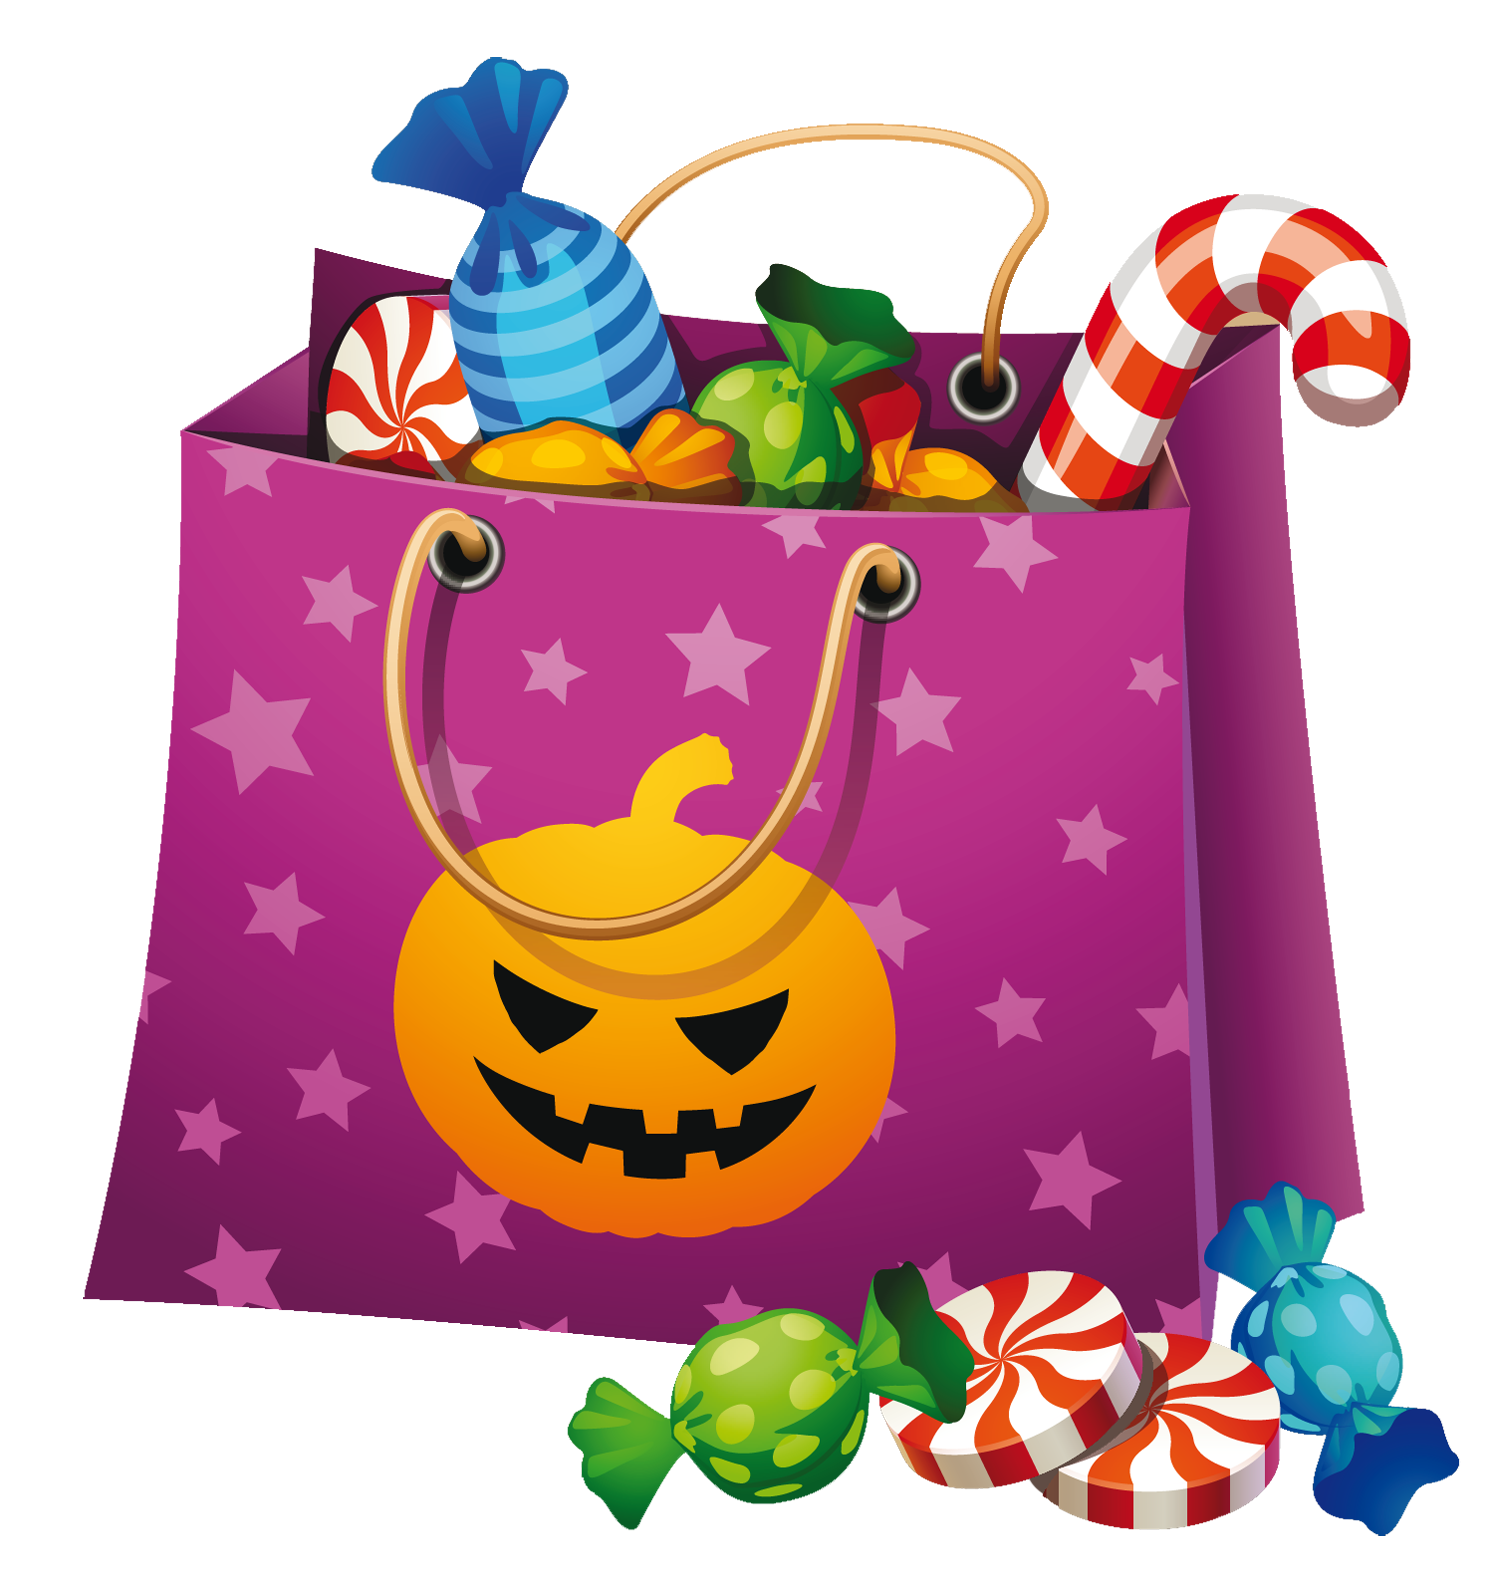 Free happy halloween pumpkin,spider,candy,cat clipart images for ...